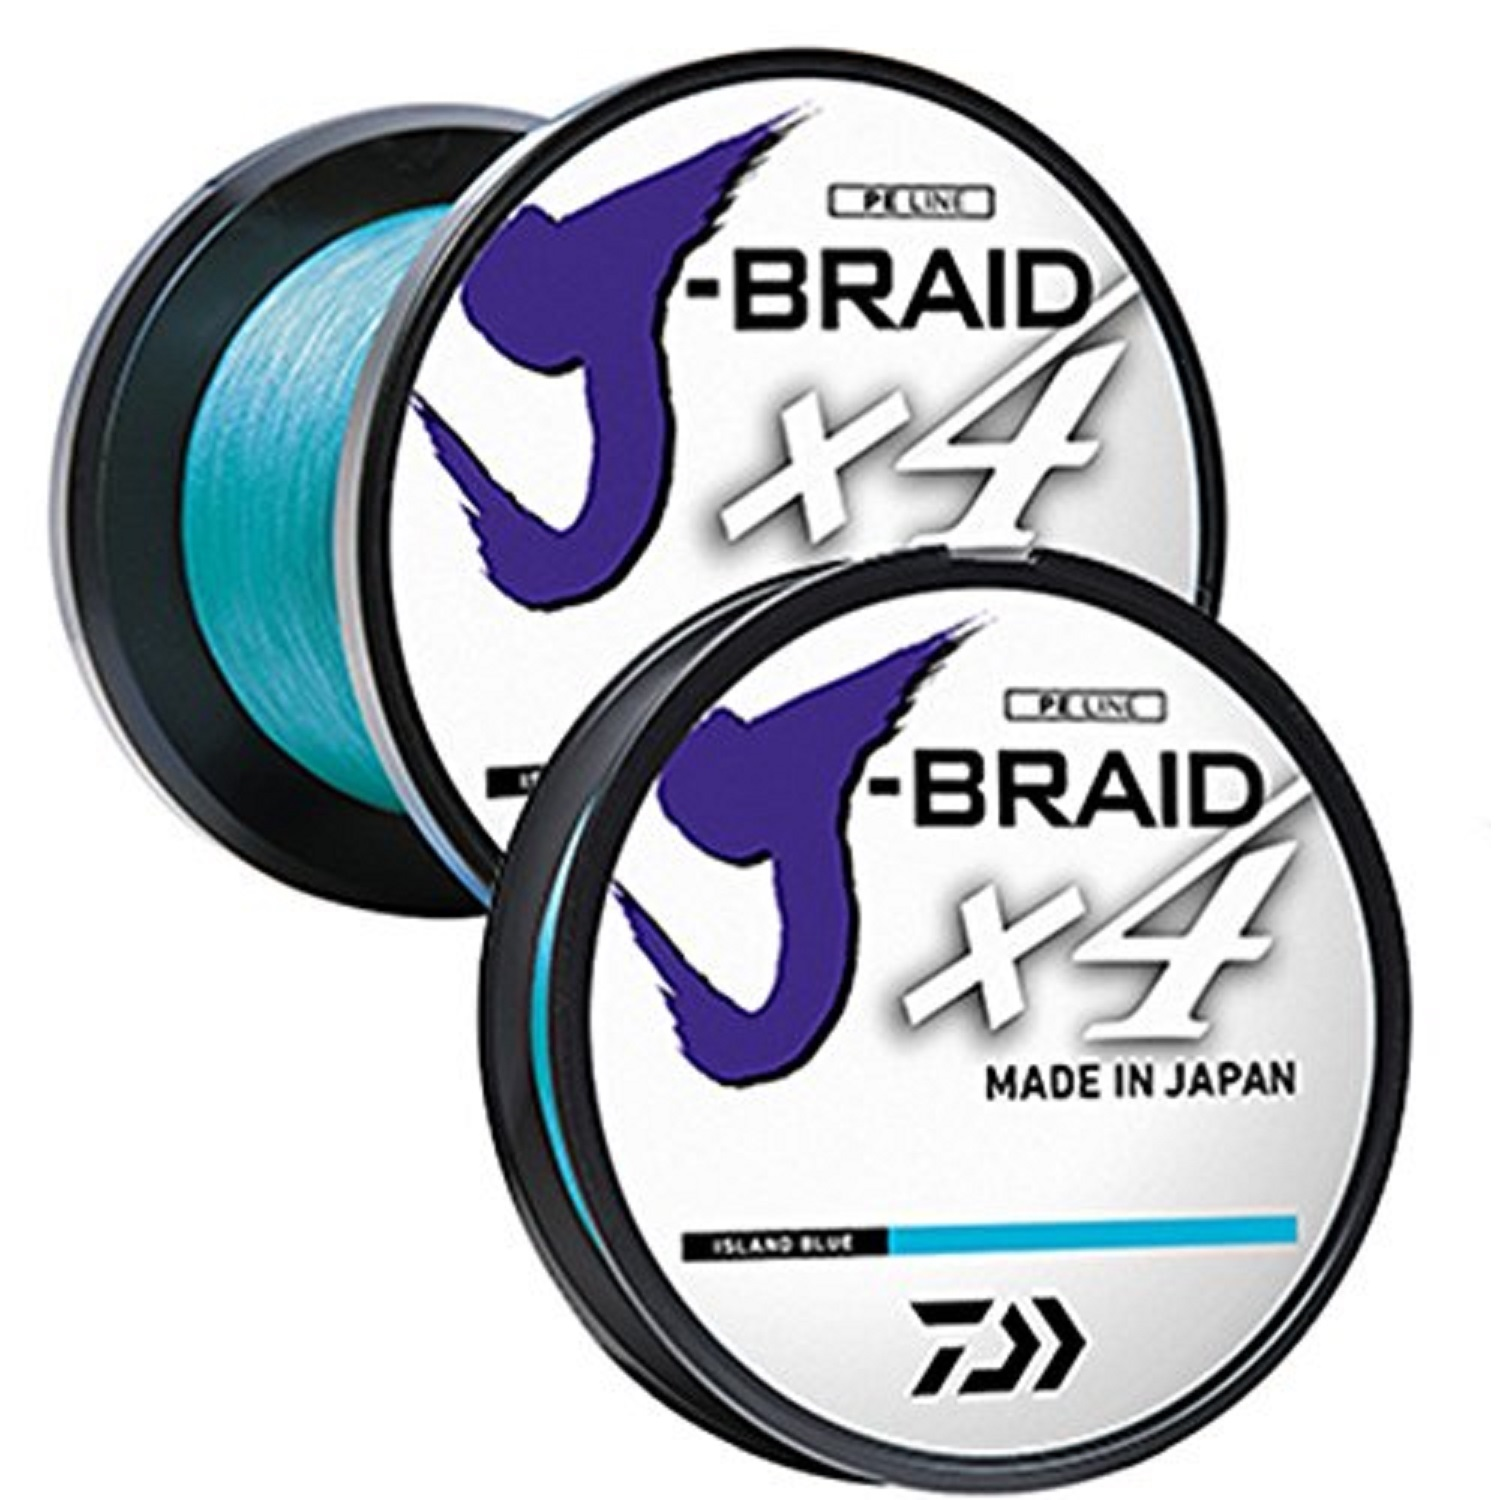 Daiwa J-Braid X4 300 Yard Spool 65LB Test, Dark Green